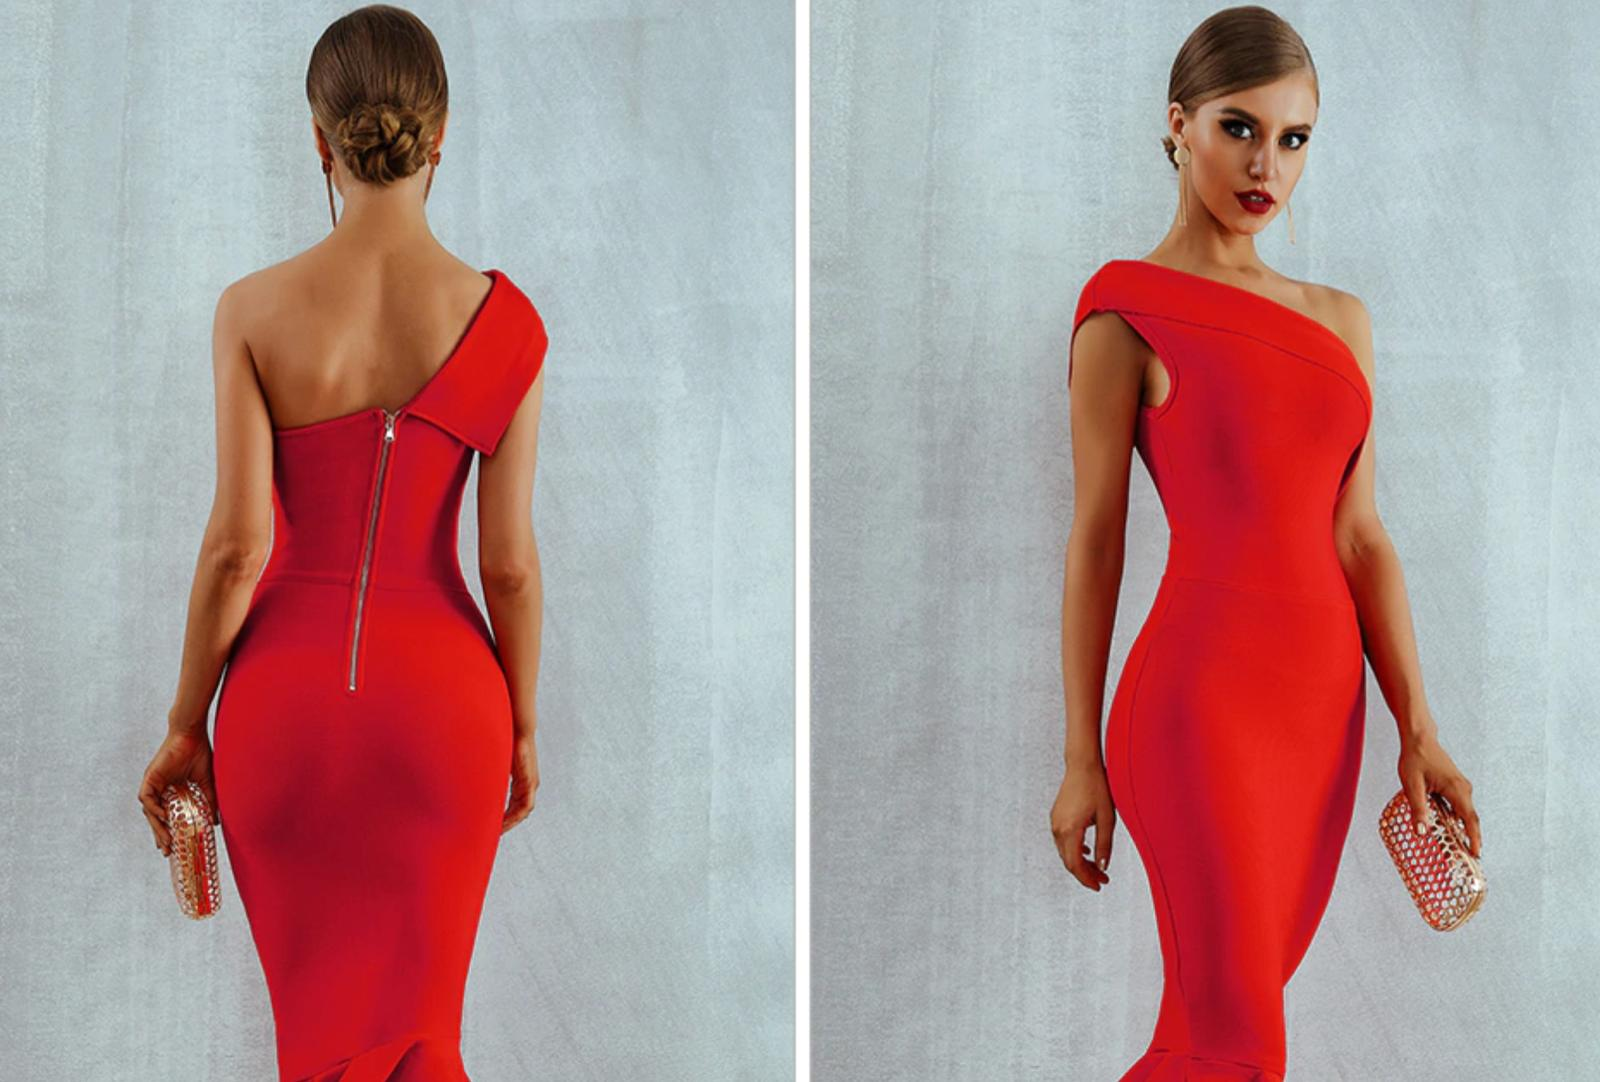 NEW! RED RUFFLE COUTURE BANDAGE DRESS NUDE DRESS